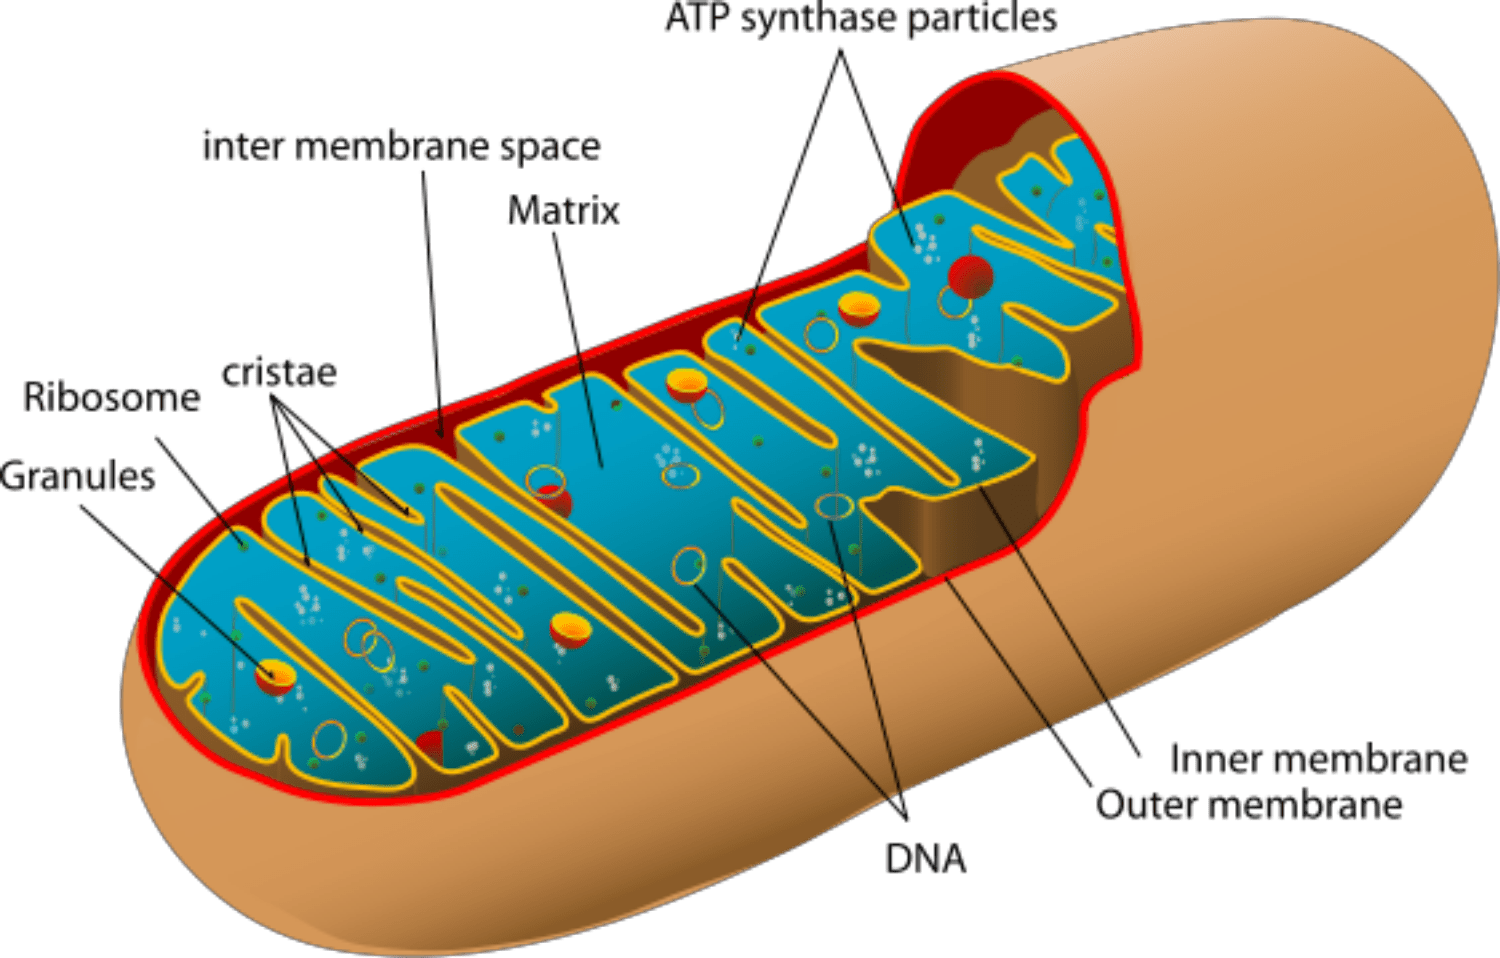 Mitochondria Power Producers In Cells Functional Anatomy Of Prokaryotic And Eukaryotic Mitochondrion Reproduction